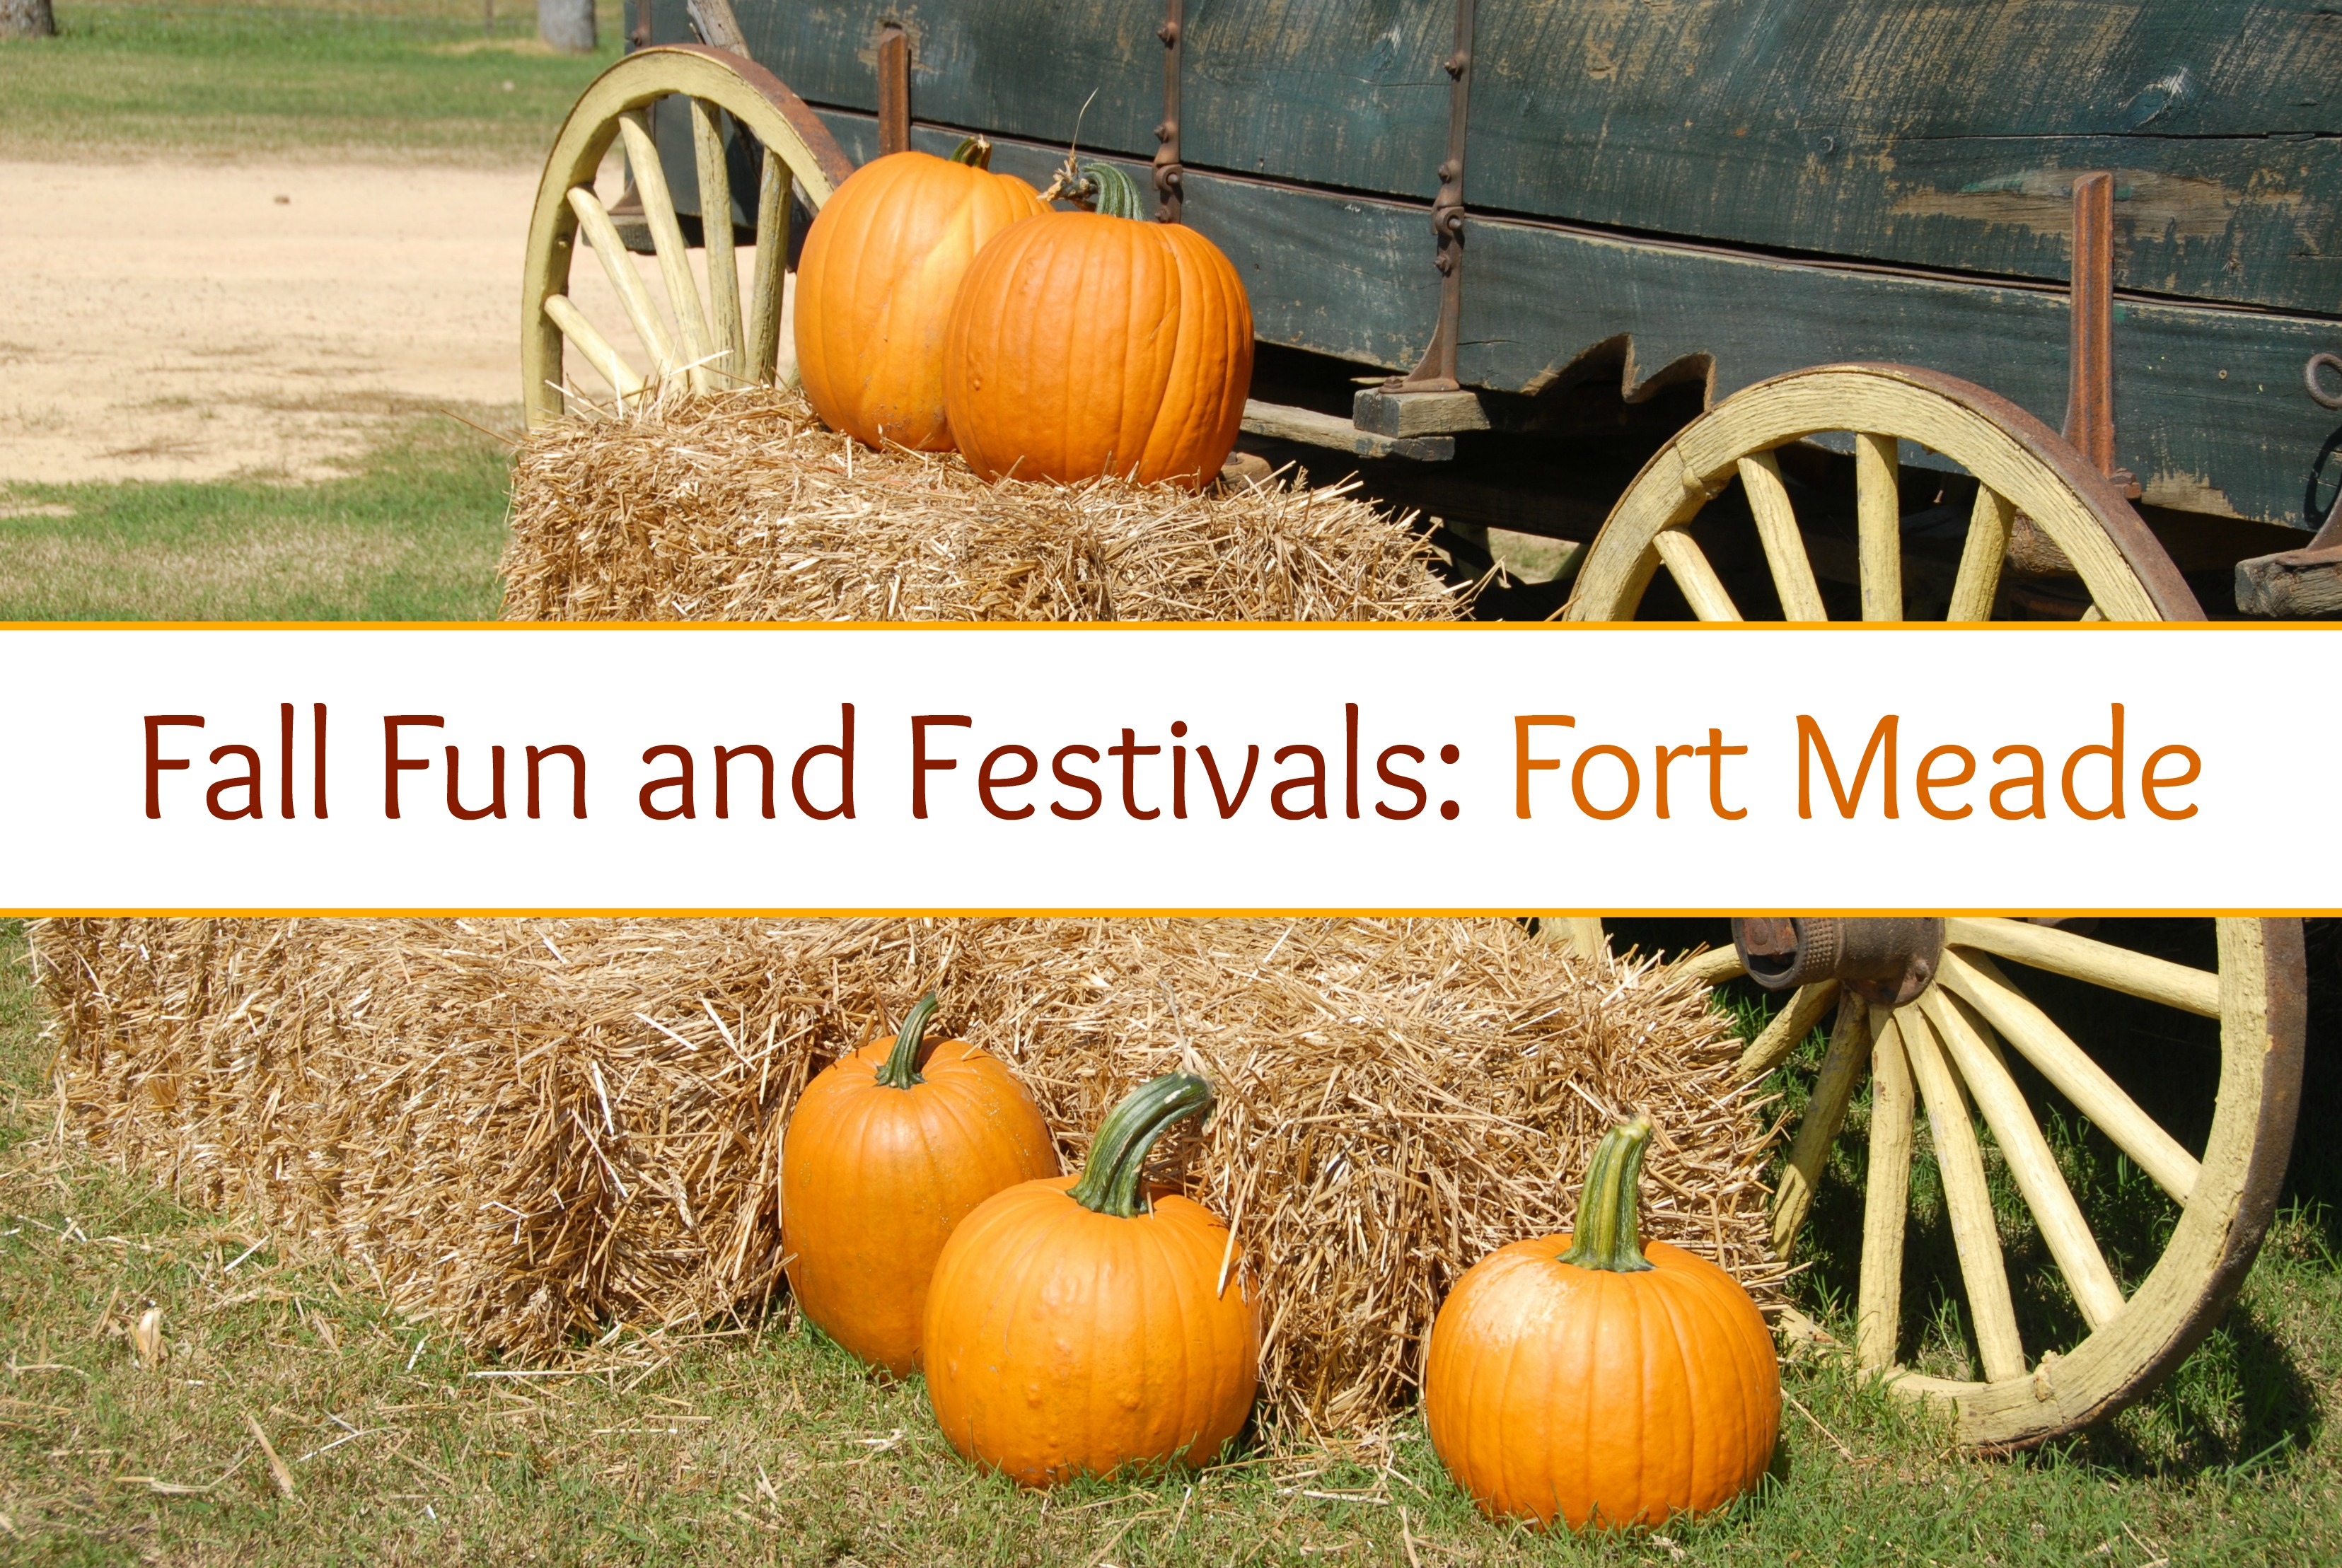 Fall Fun & Festivals: Fort Meade